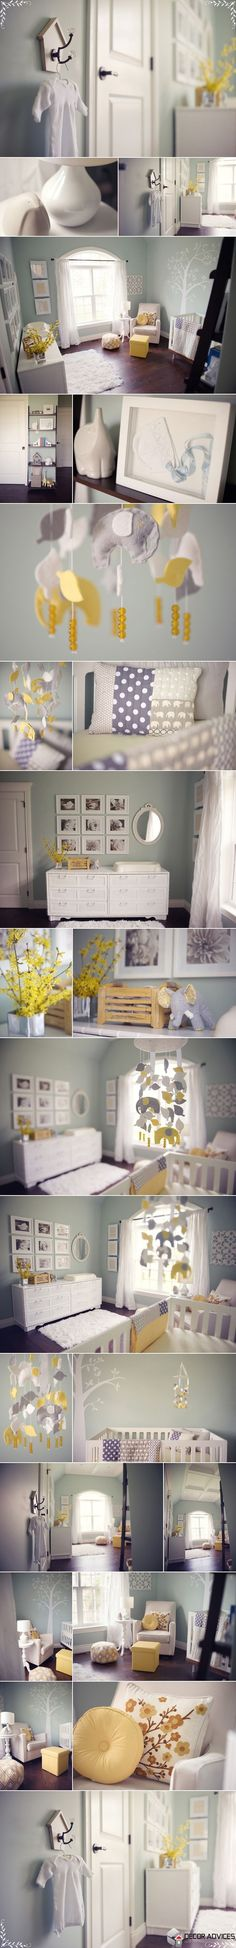 How To Decorate A Baby Room ? - http://www.decoradvices.com/how-to-decorate-a-baby-room/